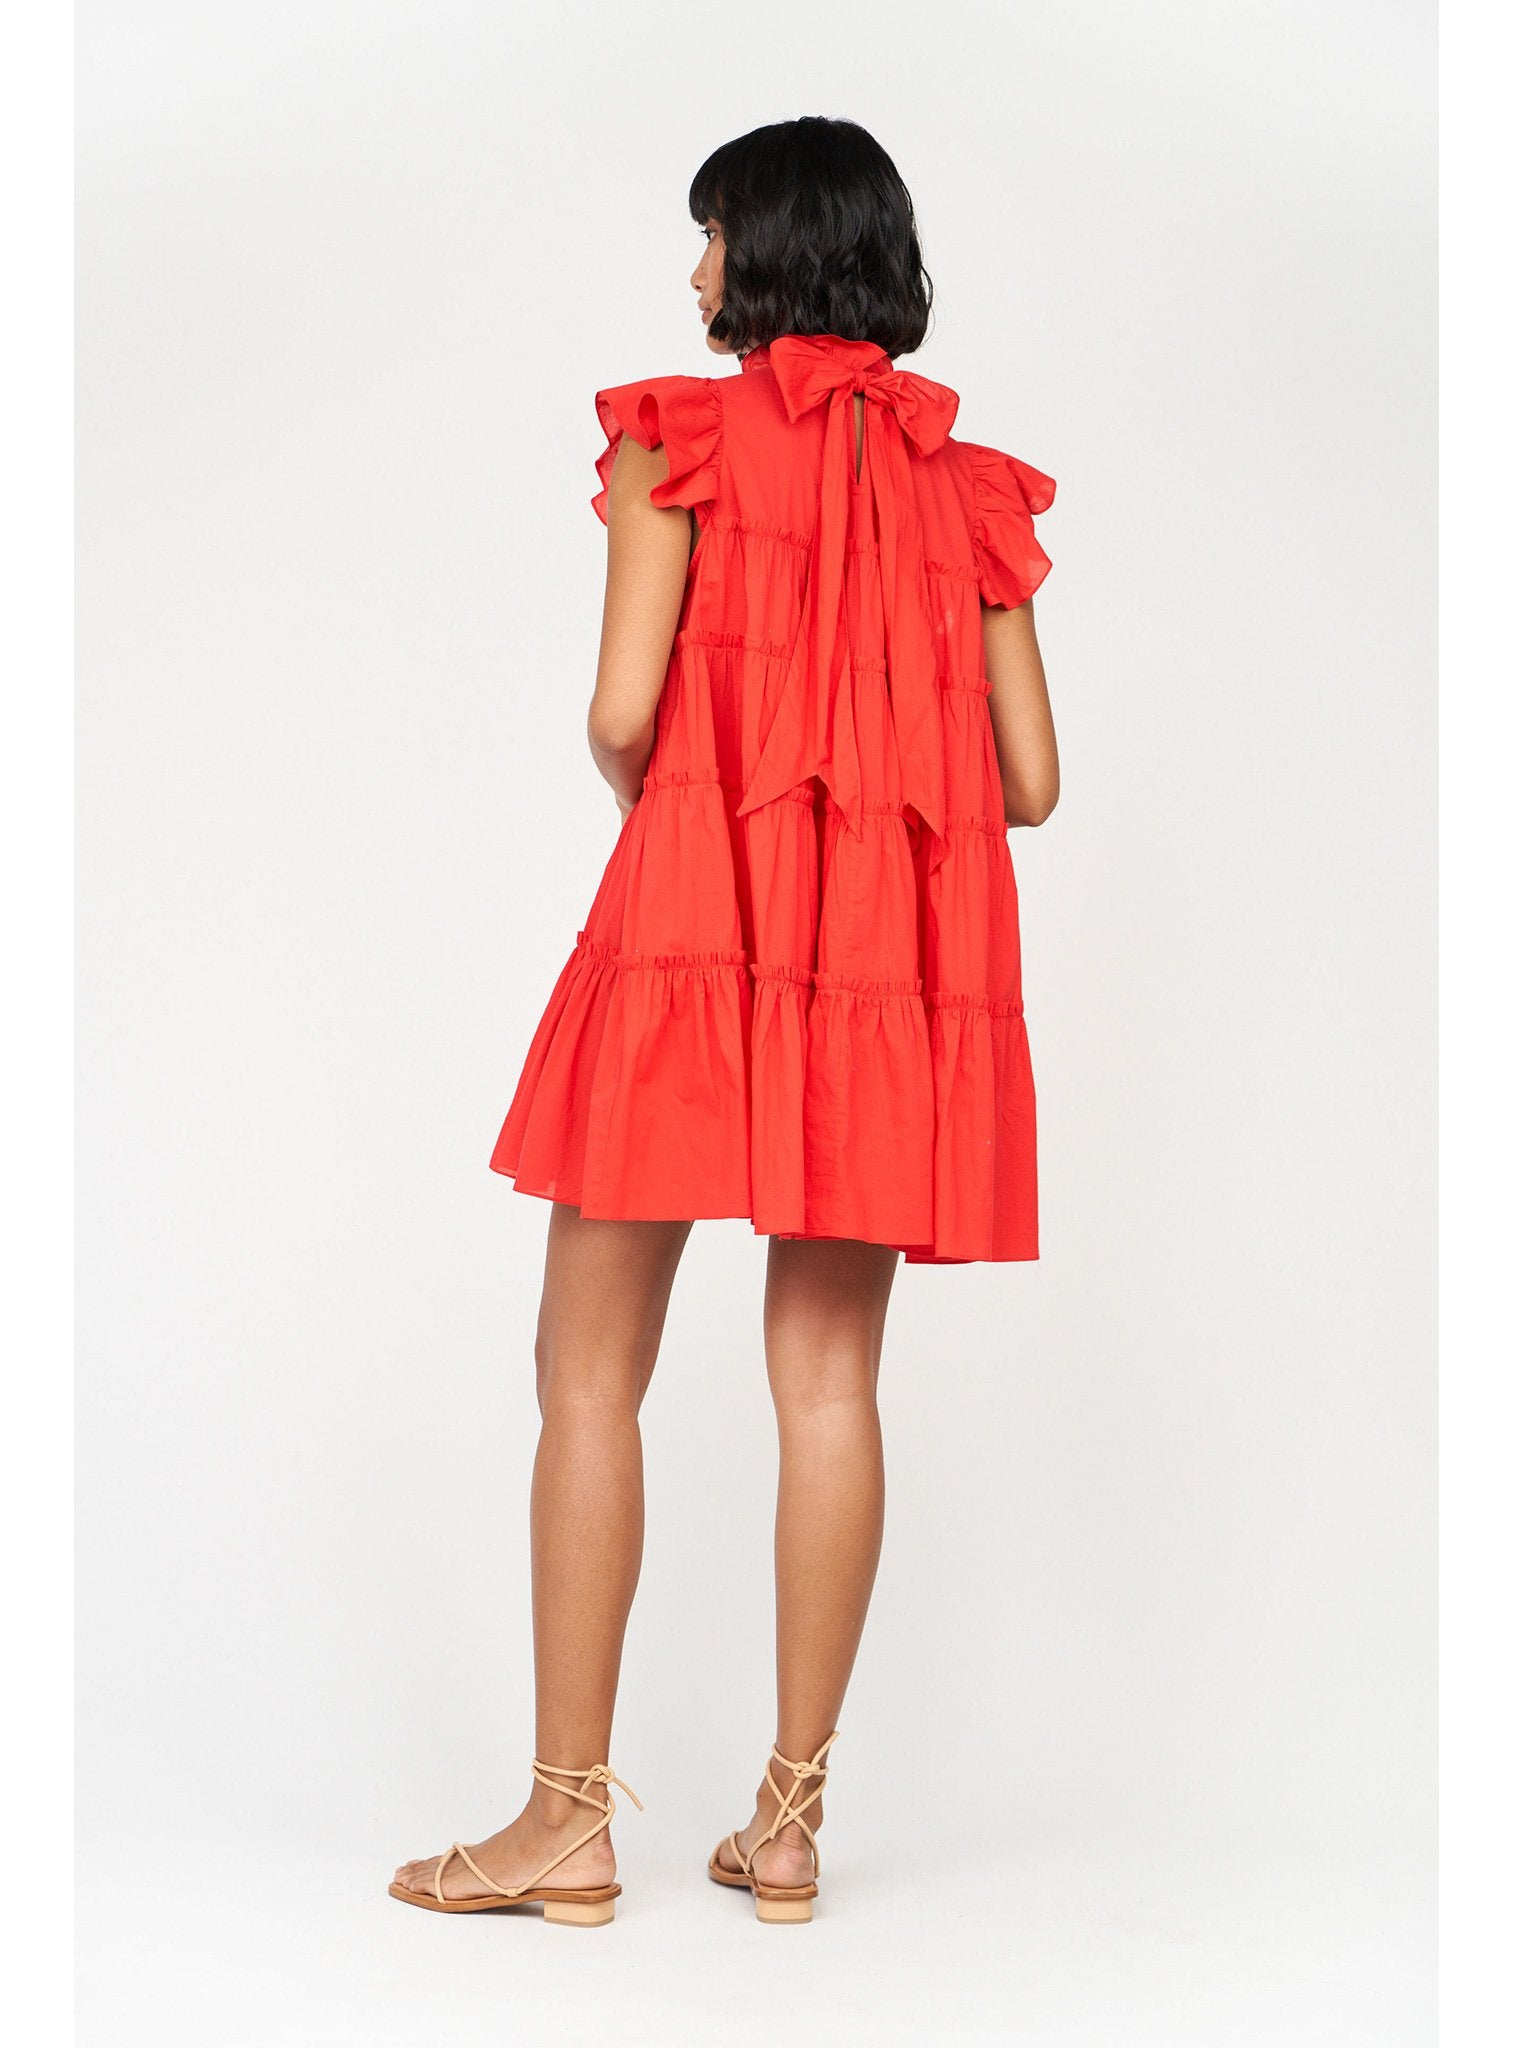 Tiffany Dress | Candy Red